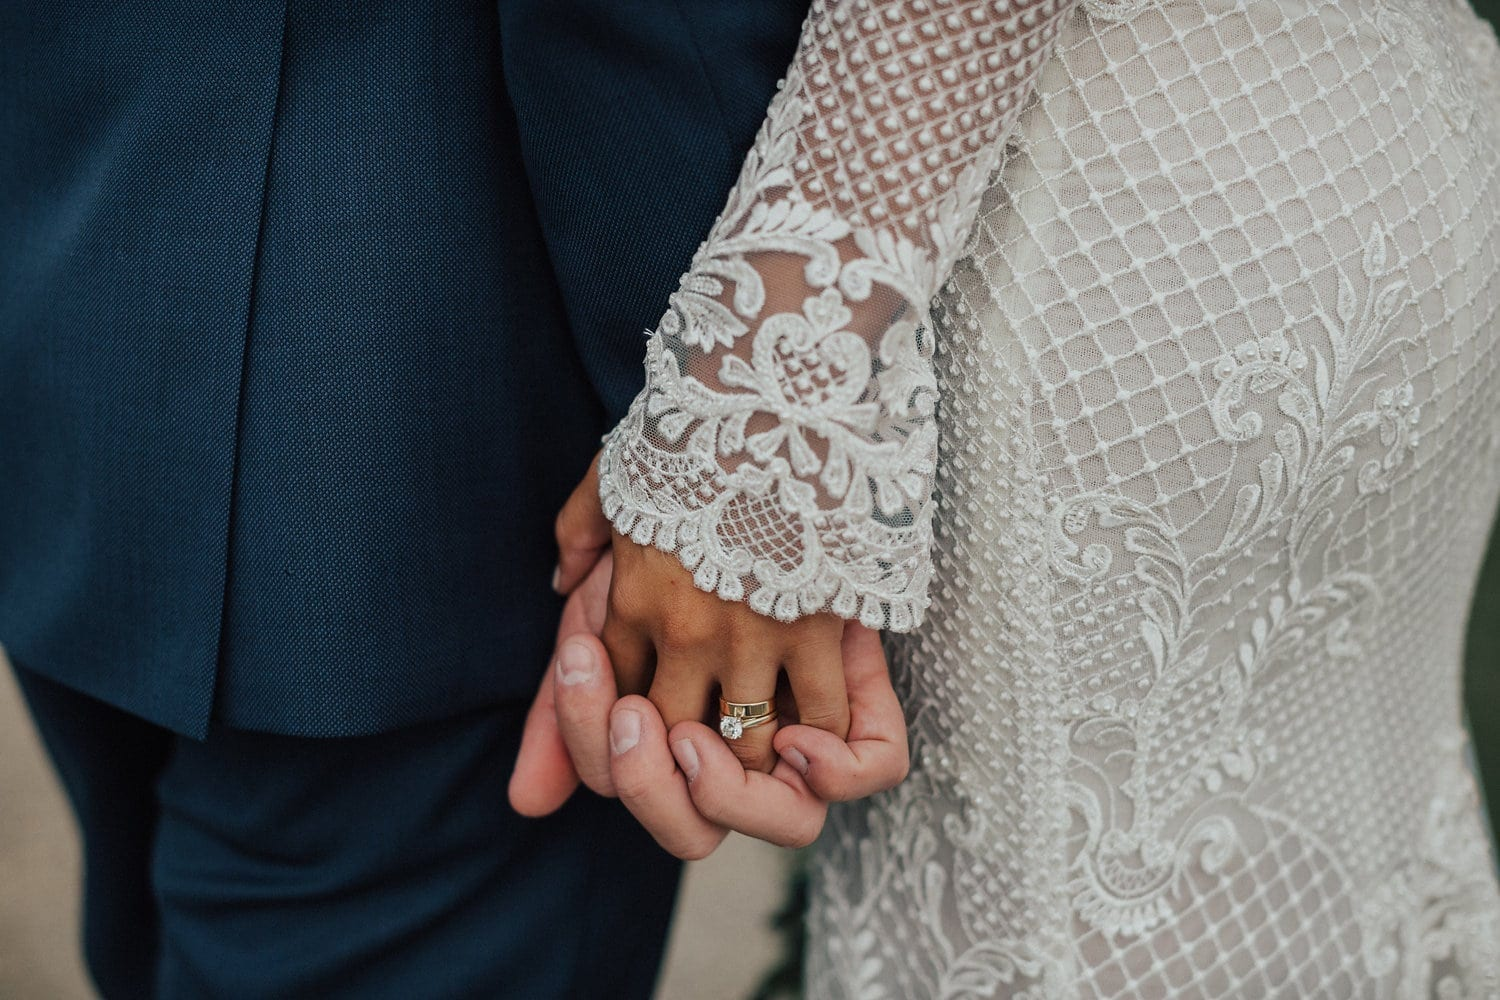 Real Weddings | Vinka Design | Real Brides Wearing Vinka Gowns | Nicole and Hayden close up of holding hands showing custom dress detail of long sleeves